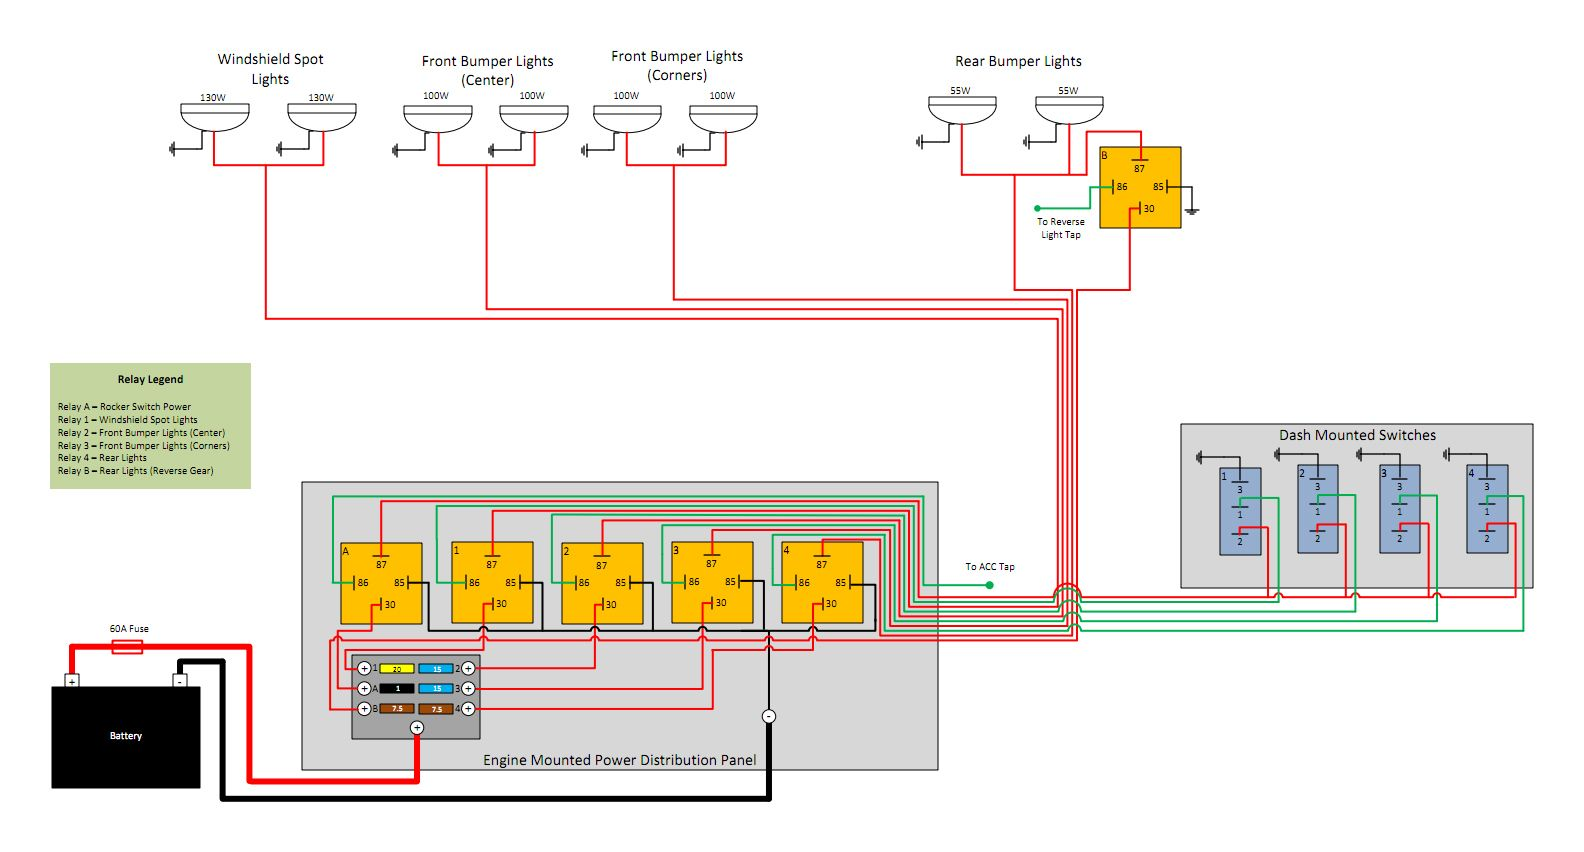 [DIAGRAM_1CA]  Relay s   Automotive electrical, Overlanding, Jeep   Cherokee Horse Trailer Wiring Diagram      Pinterest